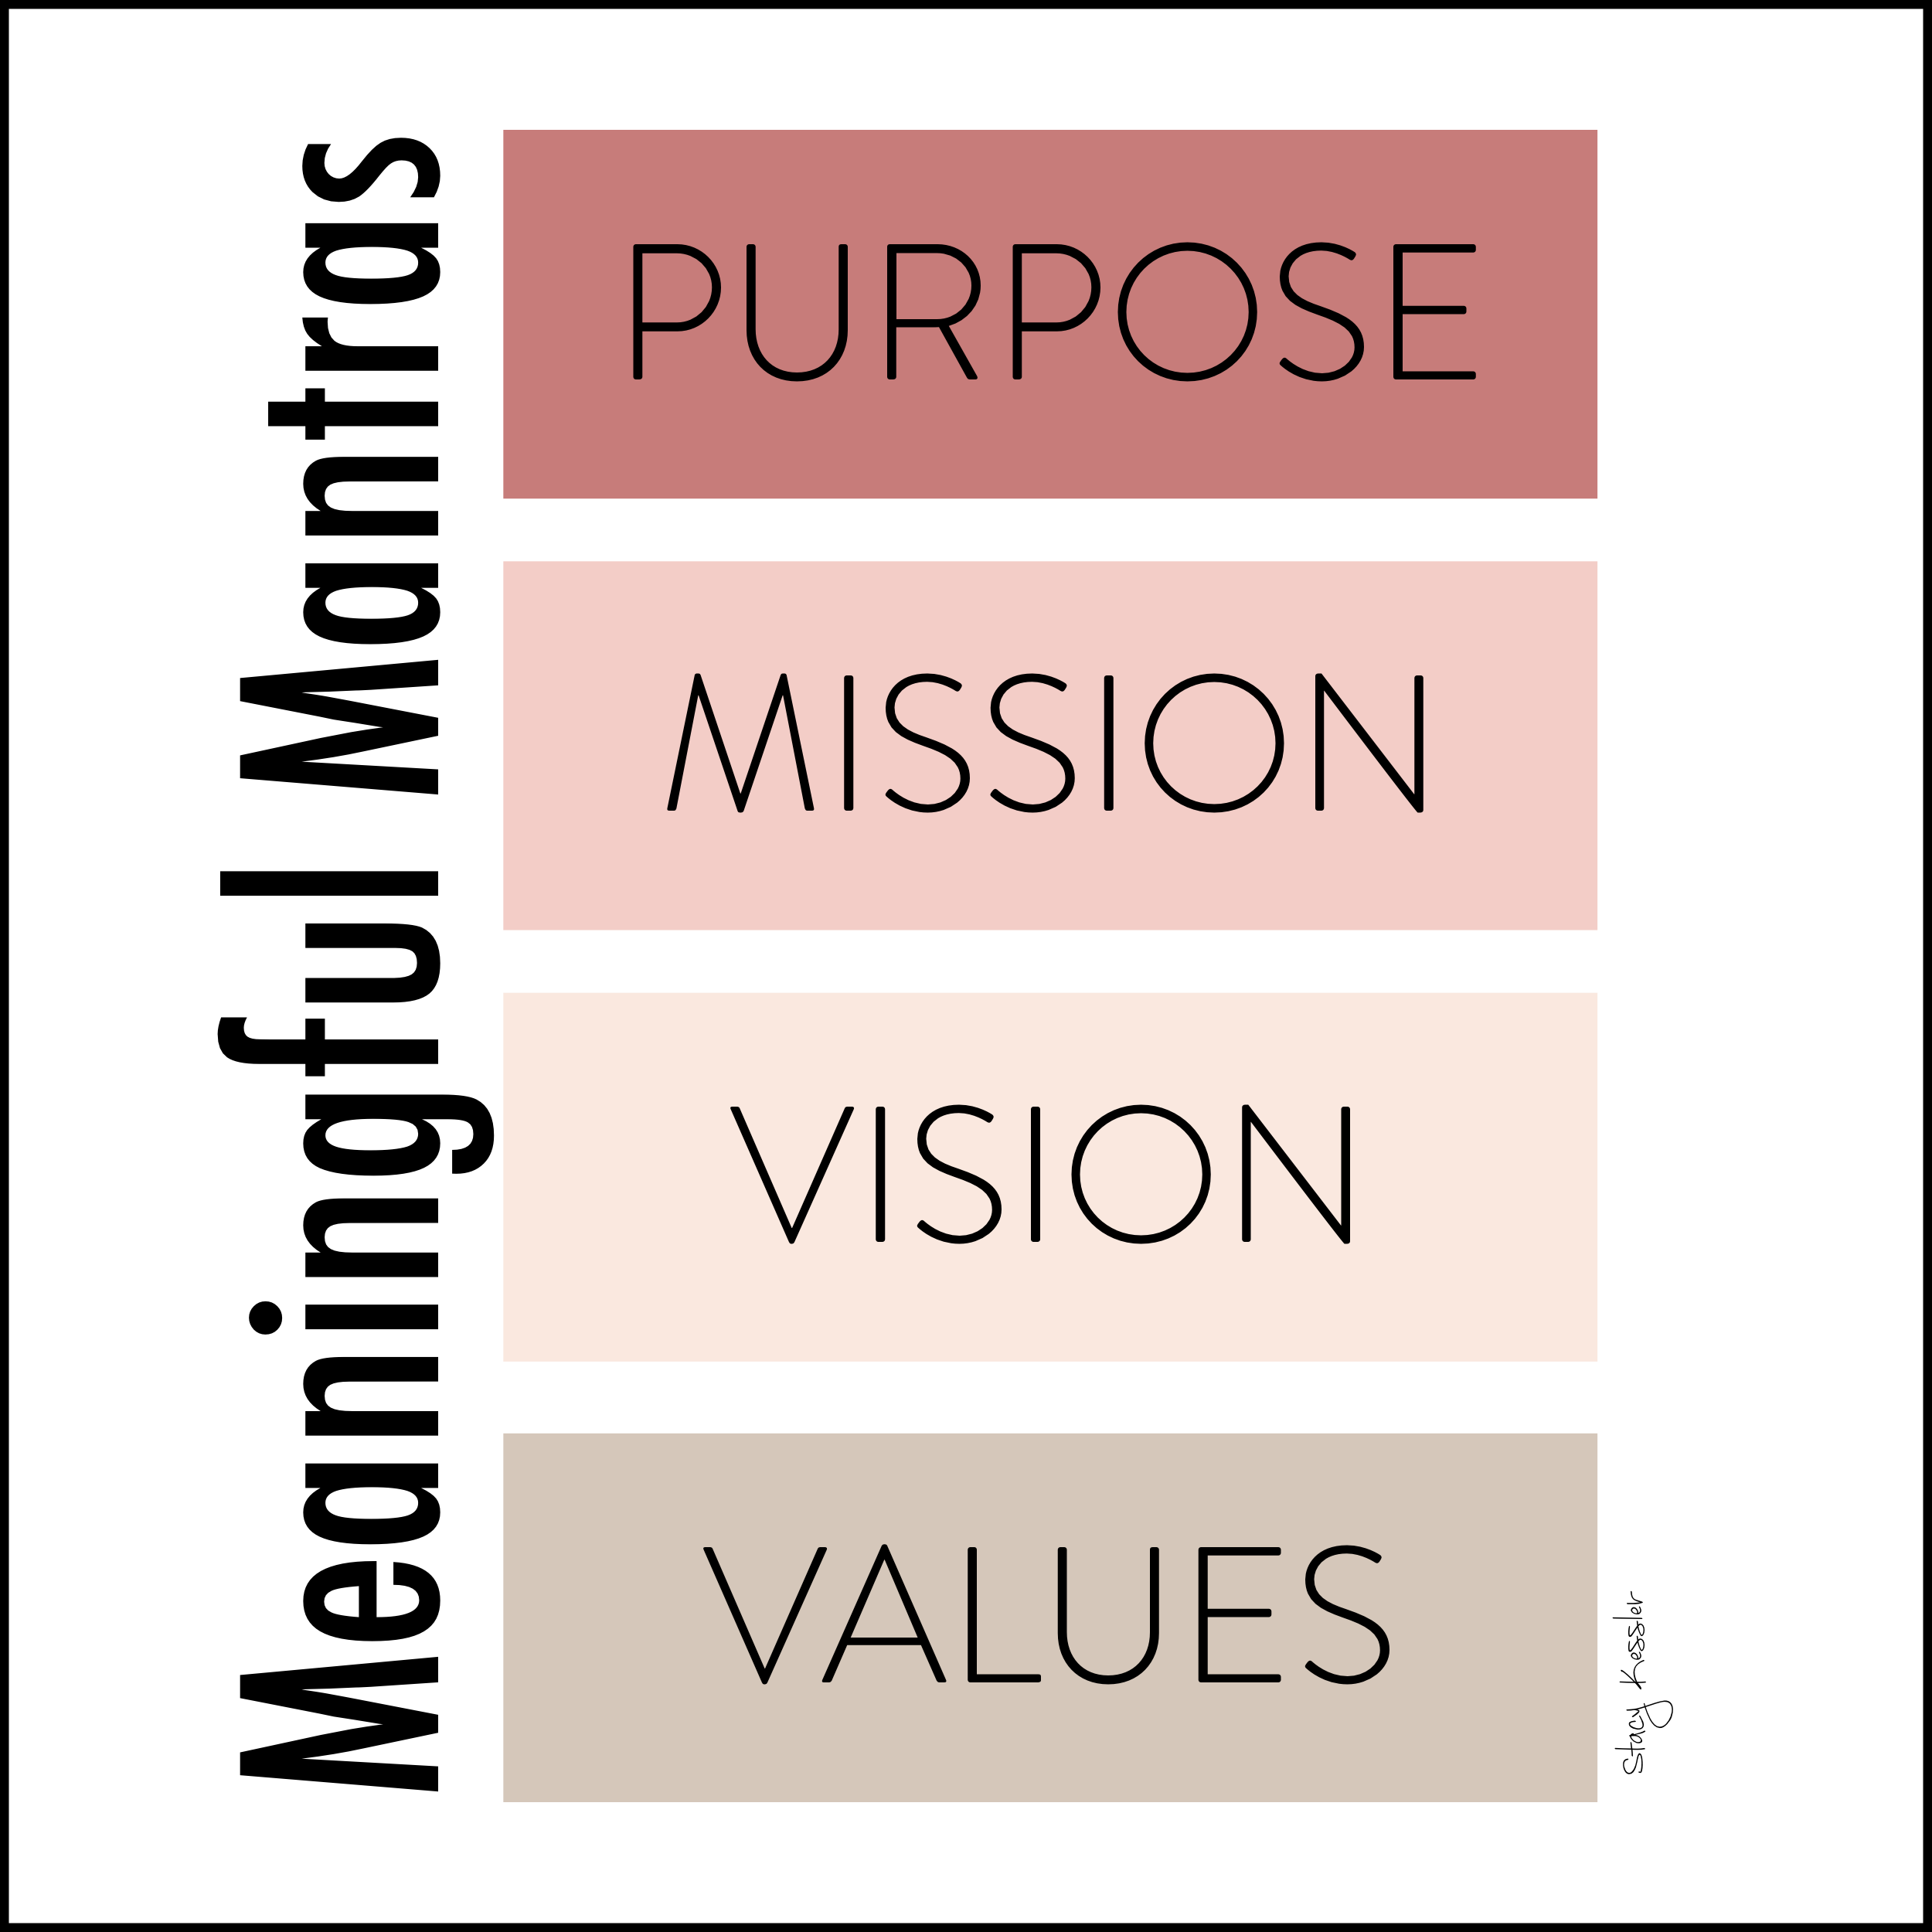 Meaningful Mantras - Mission purpose vision values - Foundational Five - Stacy Kessler.003.png